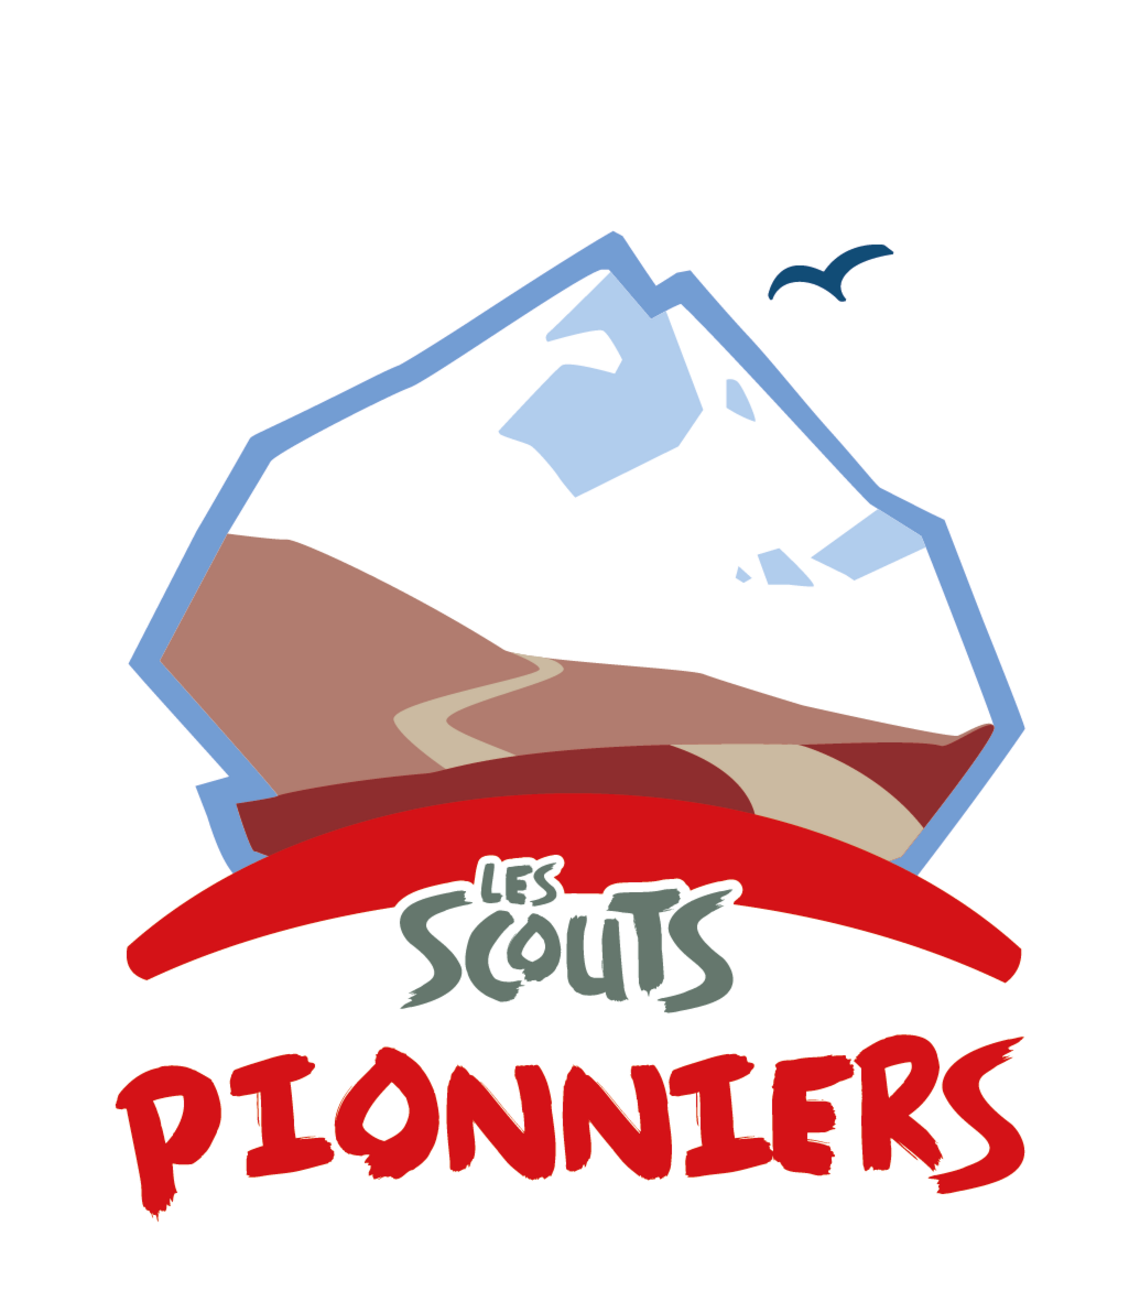 Branches Logos 2018 Pionniers